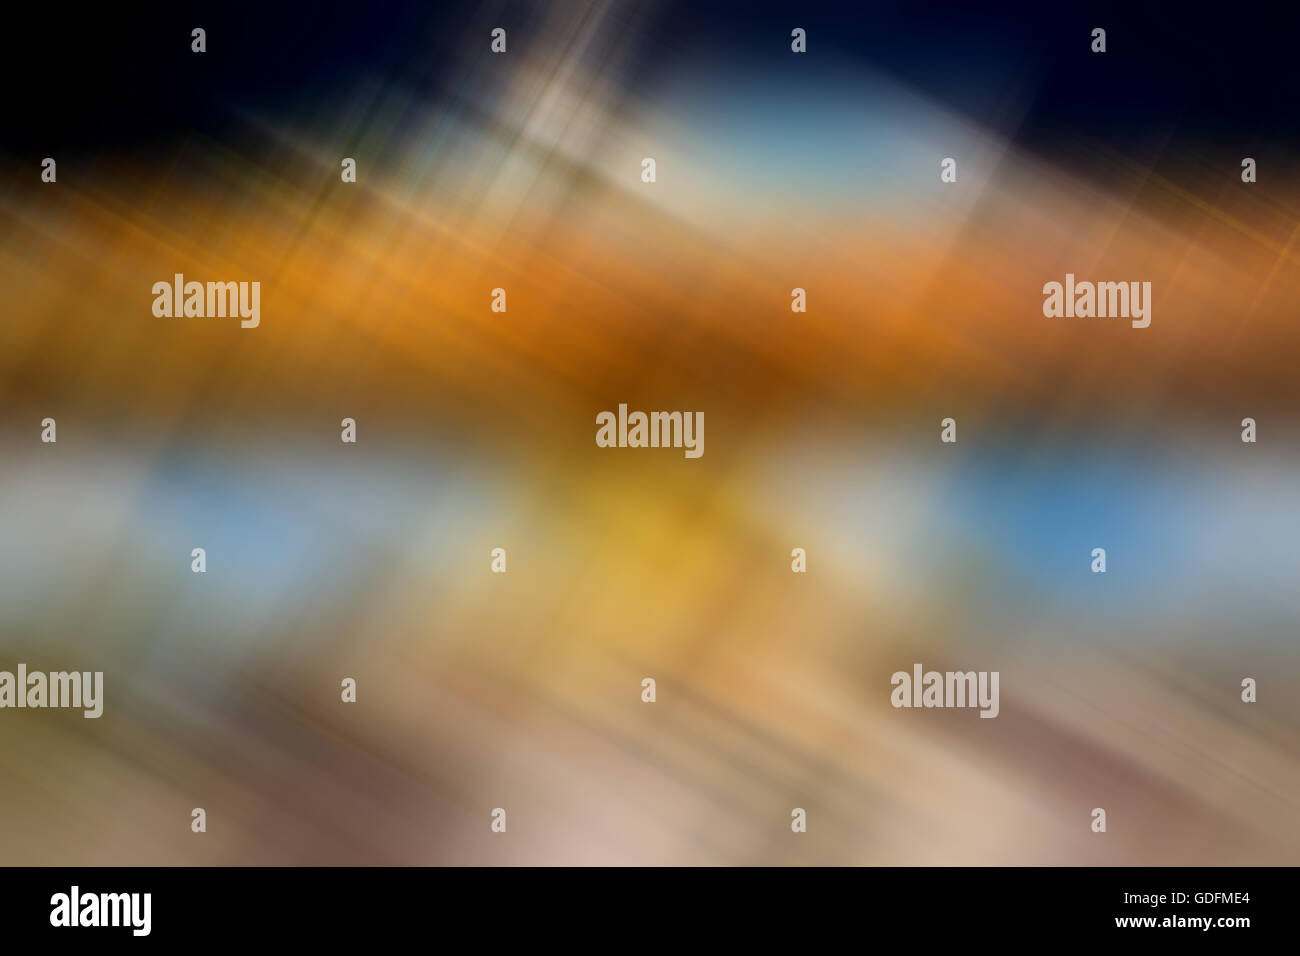 Abstract background in  brown tones. - Stock Image